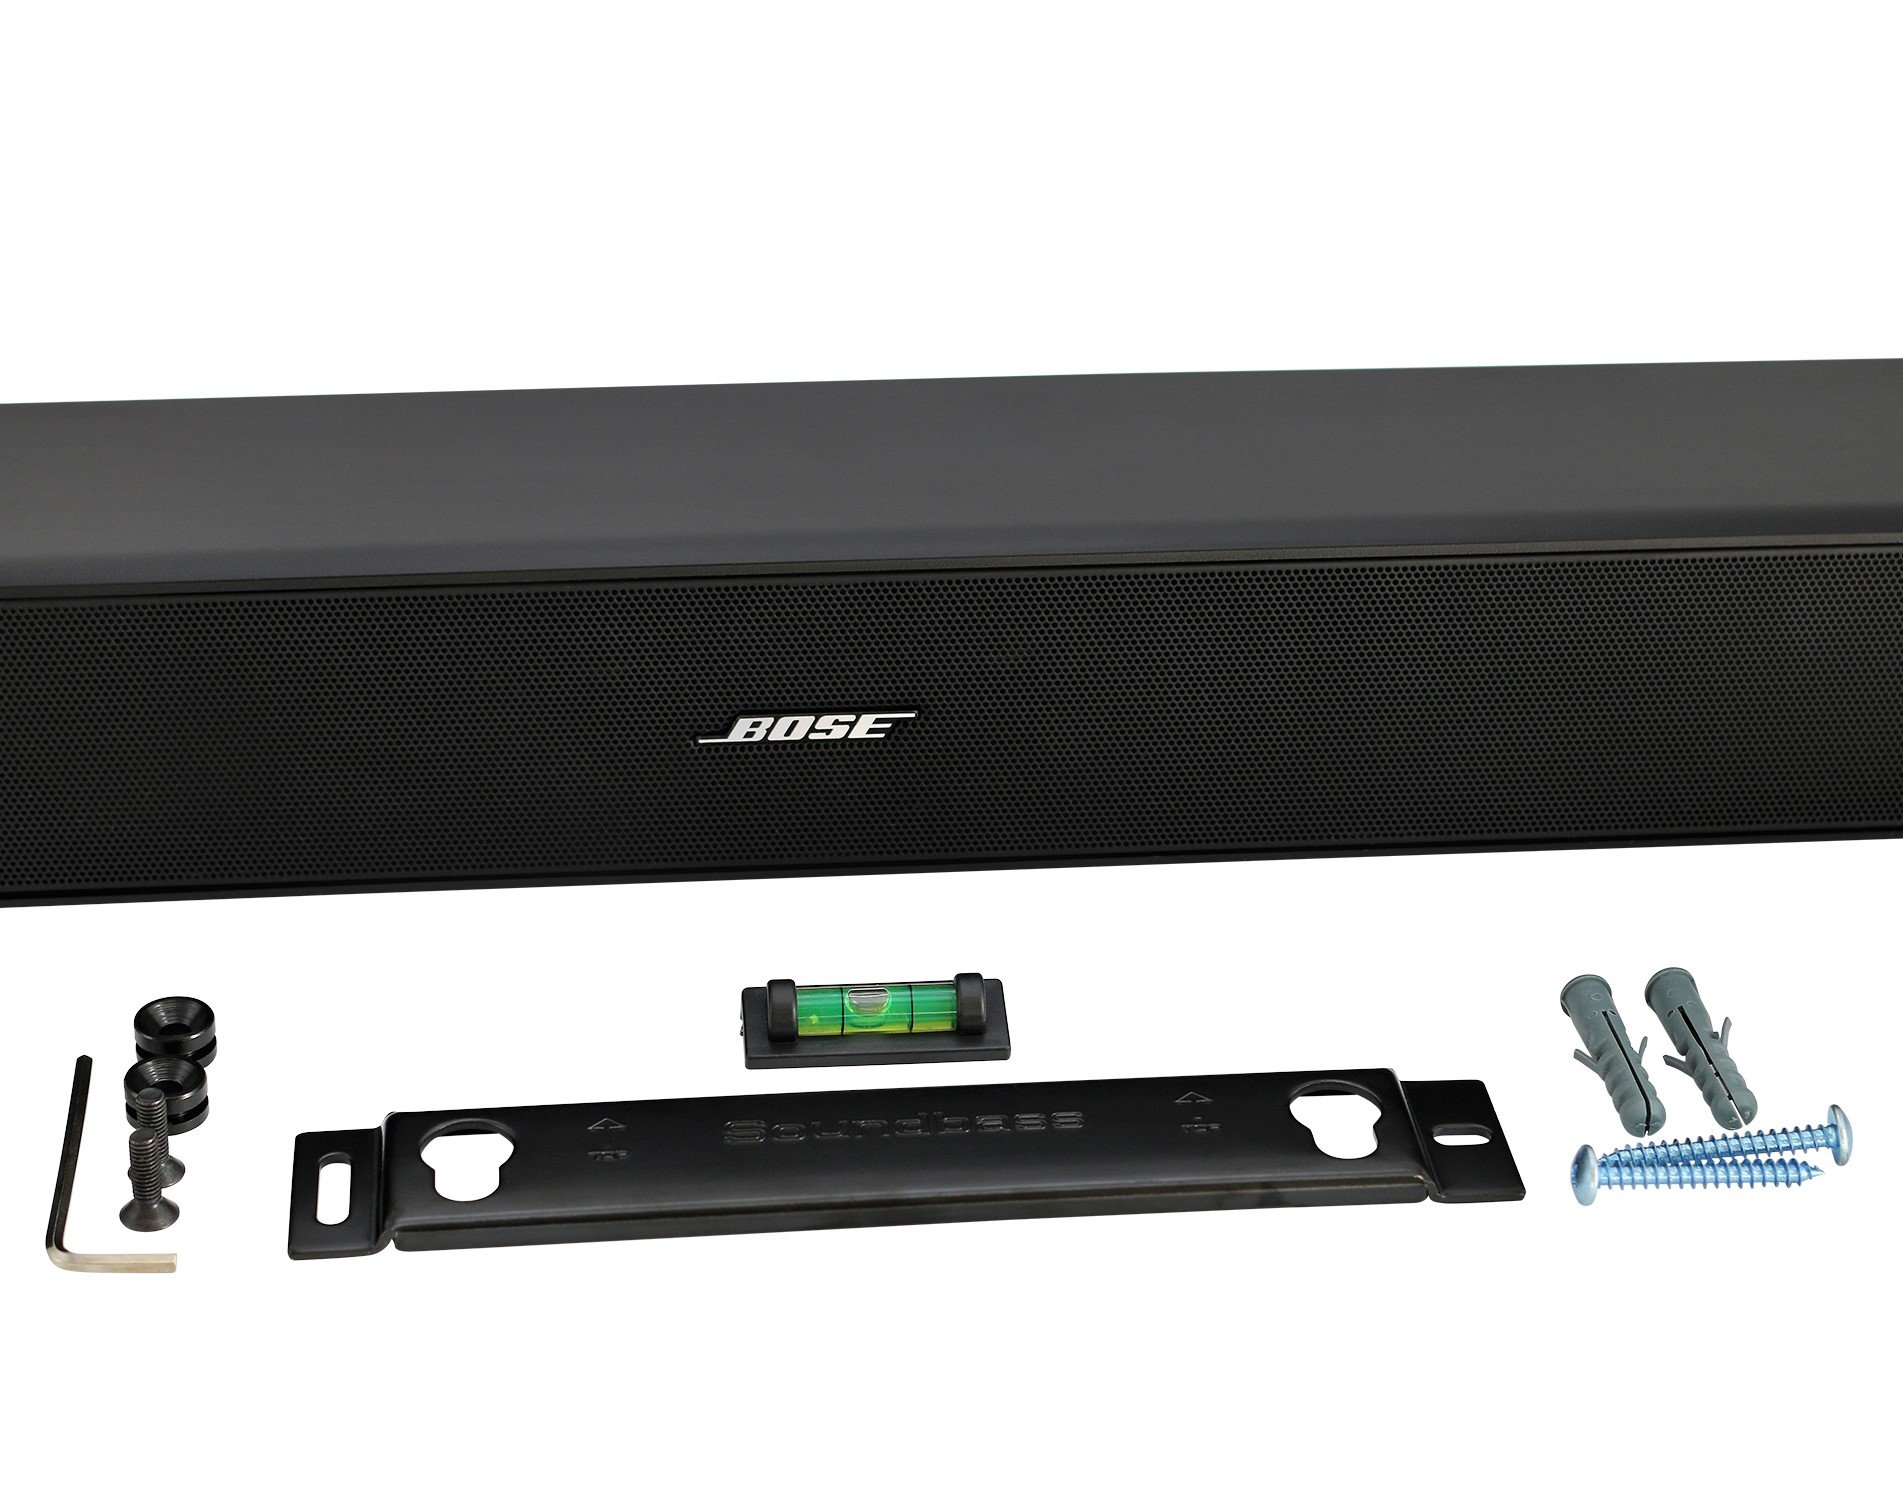 universal soundbar wall mount kit with mounting accessories for bose cinemate ebay. Black Bedroom Furniture Sets. Home Design Ideas